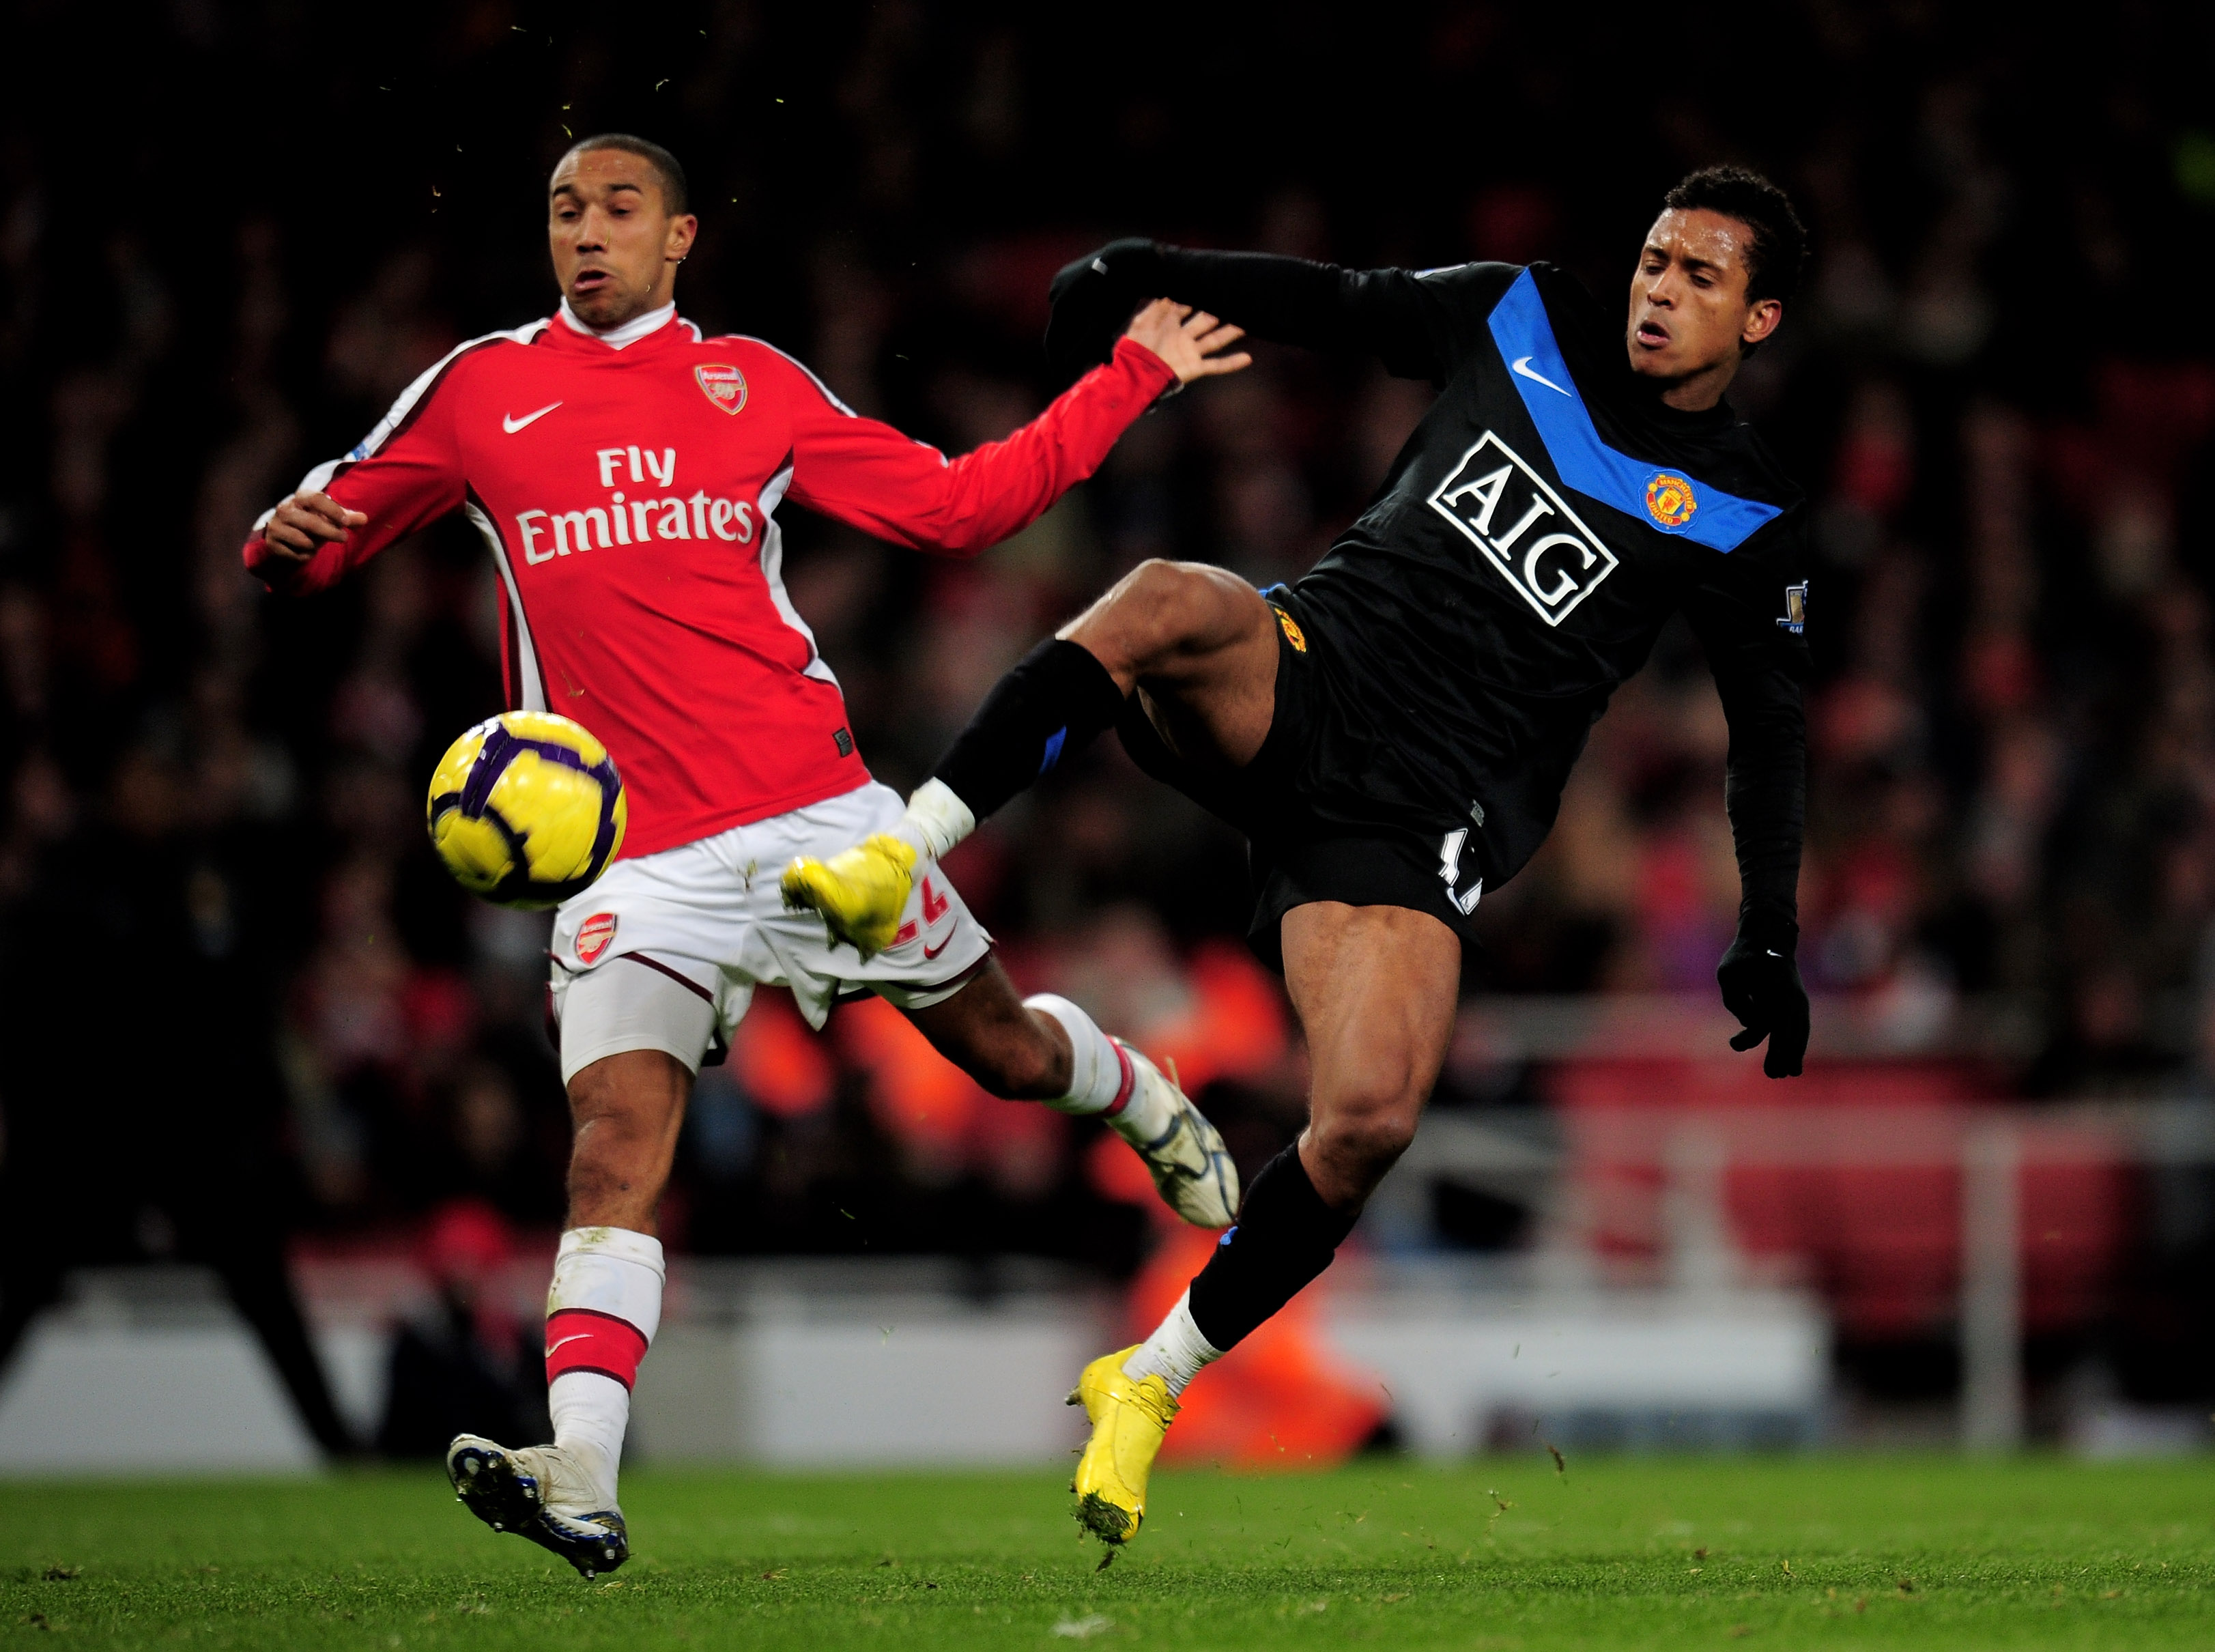 LONDON, ENGLAND - JANUARY 31:  Gael Clichy of Arsenal and Nani of Manchester United battle for the ball during the Barclays Premier League match between Arsenal and Manchester United at The Emirates Stadium on January 31, 2010 in London, England.  (Photo